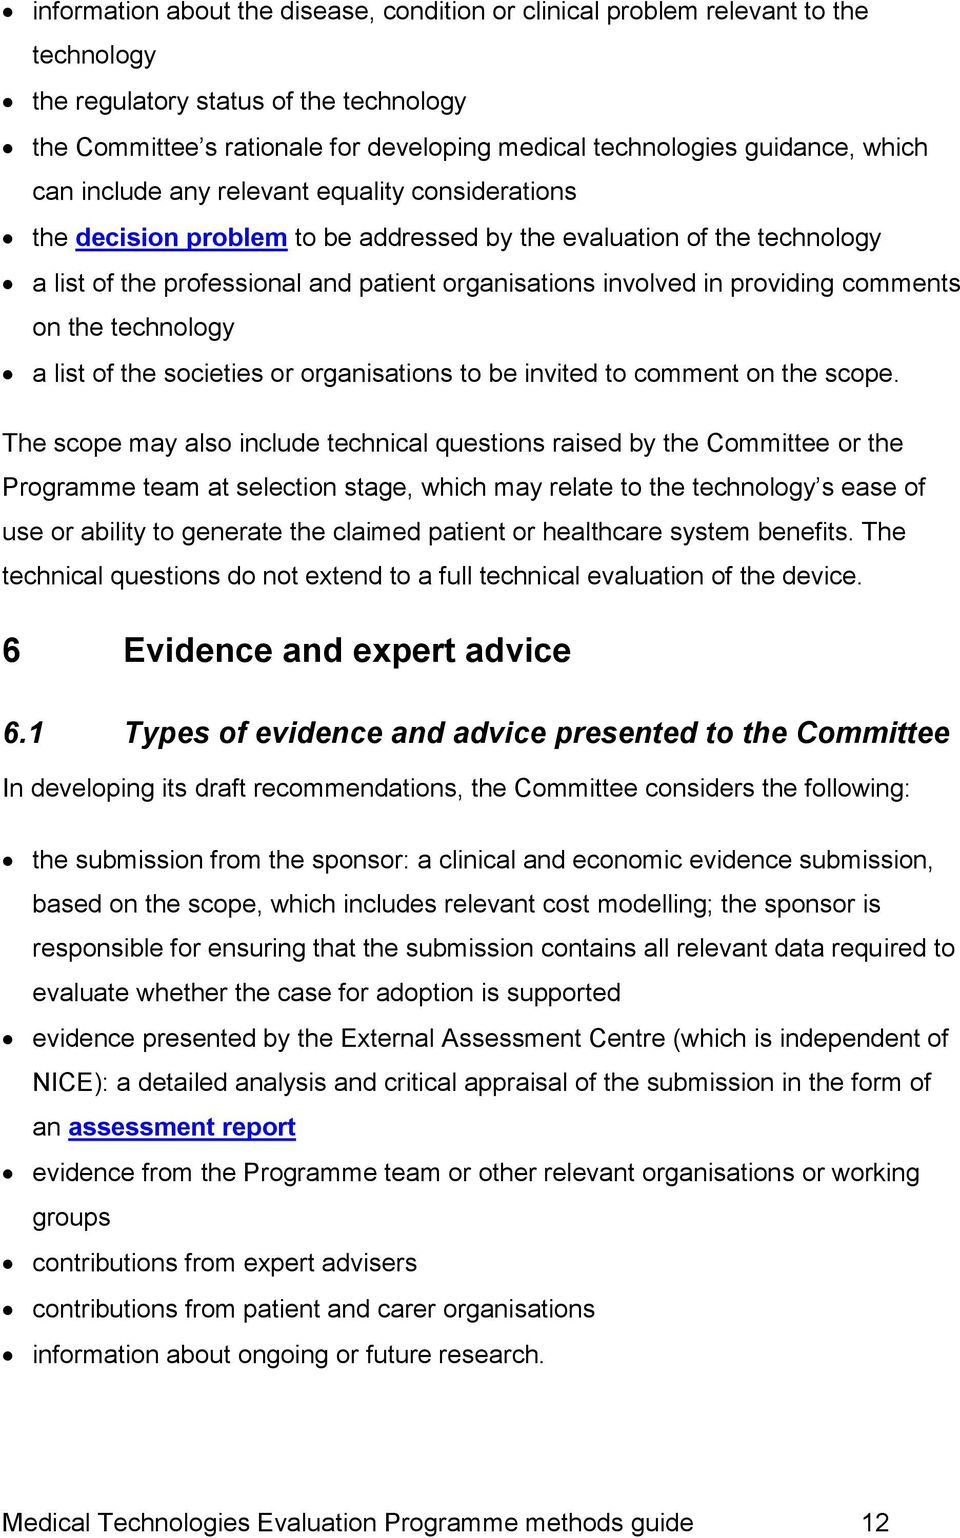 providing comments on the technology a list of the societies or organisations to be invited to comment on the scope.